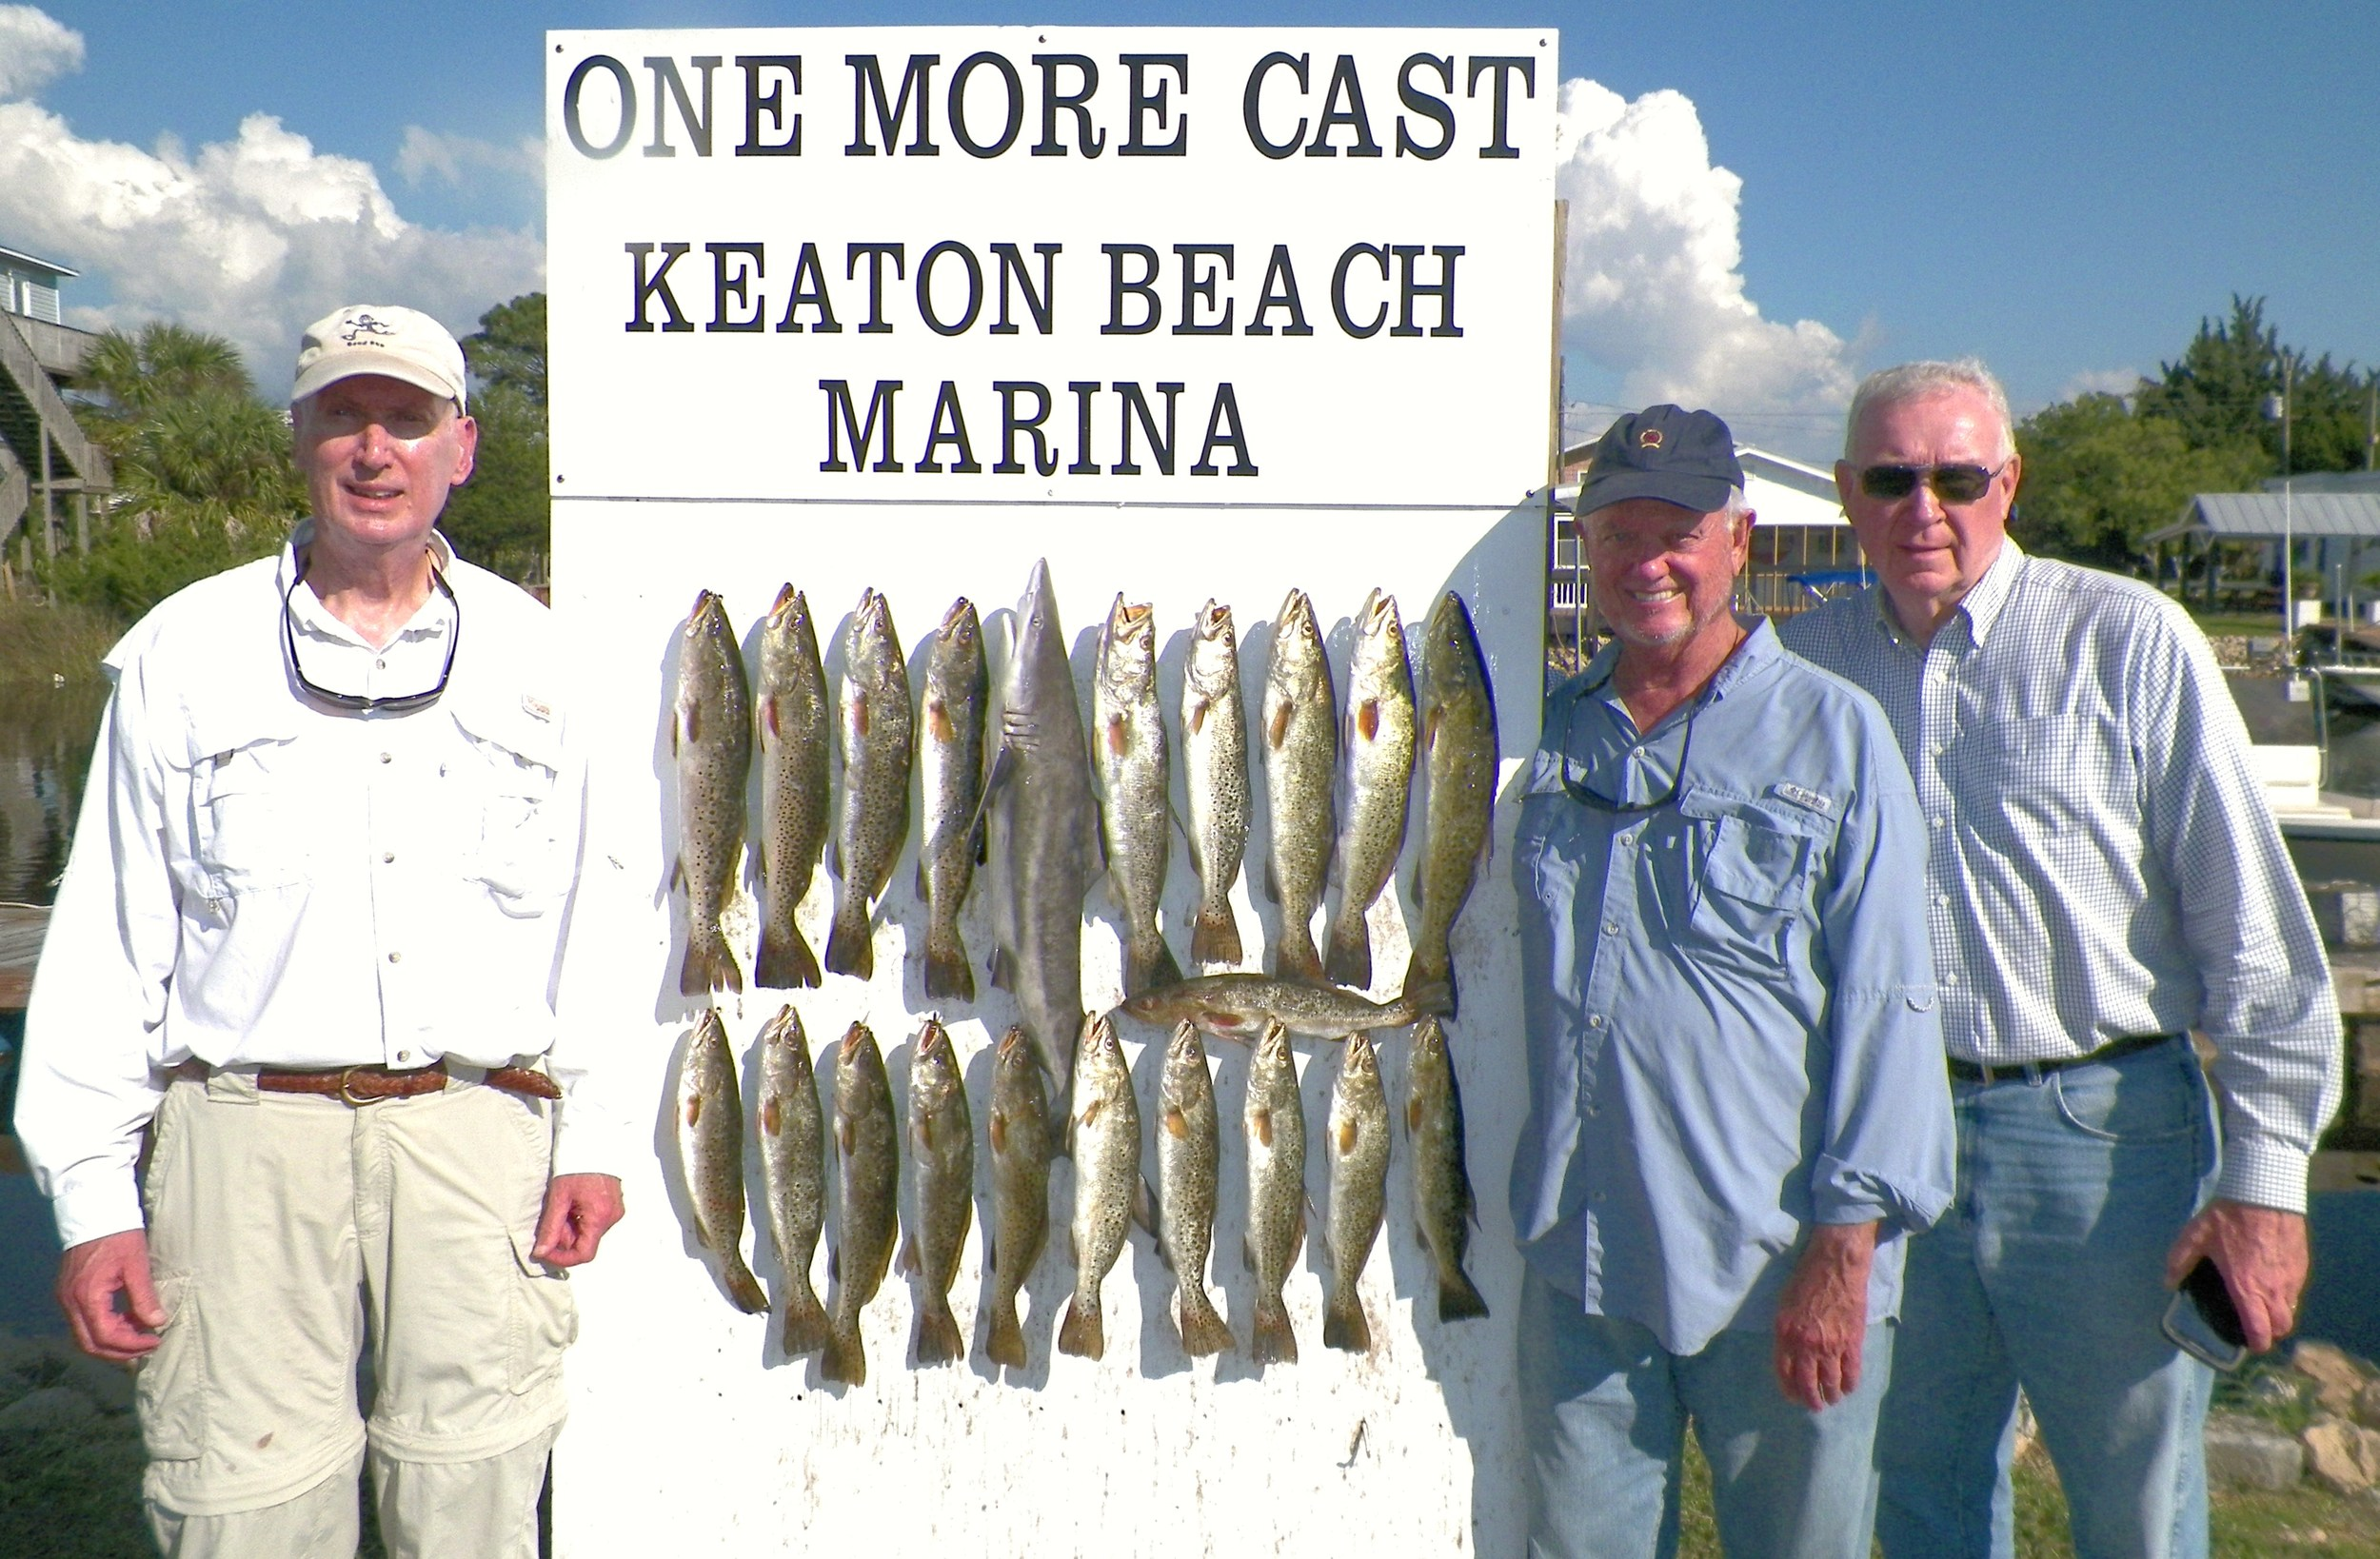 Harry Dorsey, Mike Johnston and Larry Sculley of Albany, Ga took three hours to land this catch!